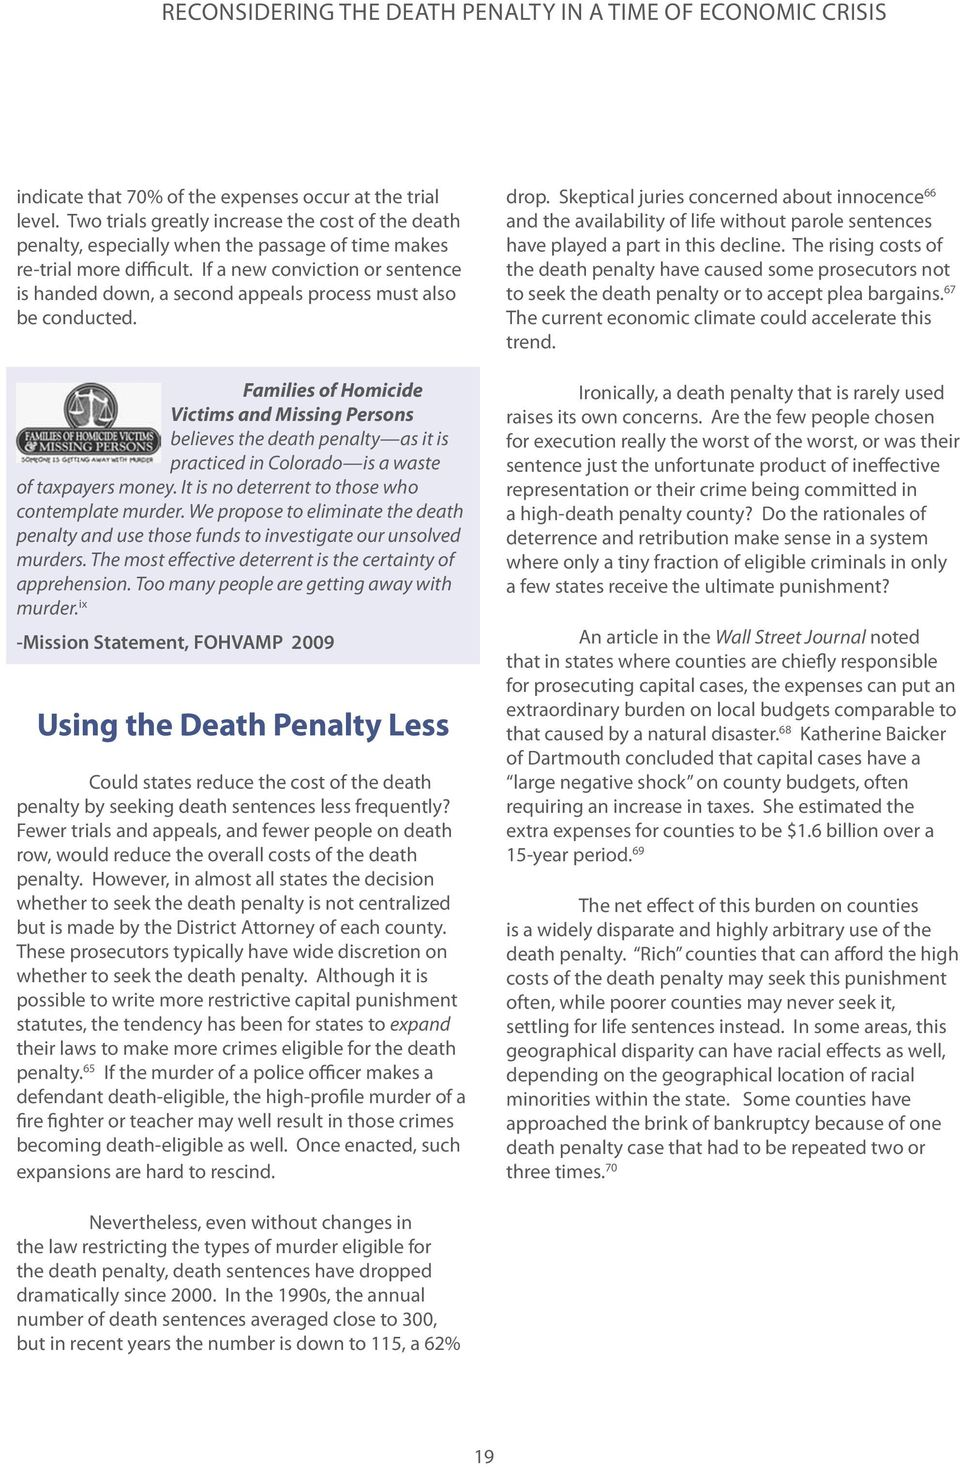 Families of Homicide Victims and Missing Persons believes the death penalty as it is practiced in Colorado is a waste of taxpayers money. It is no deterrent to those who contemplate murder.